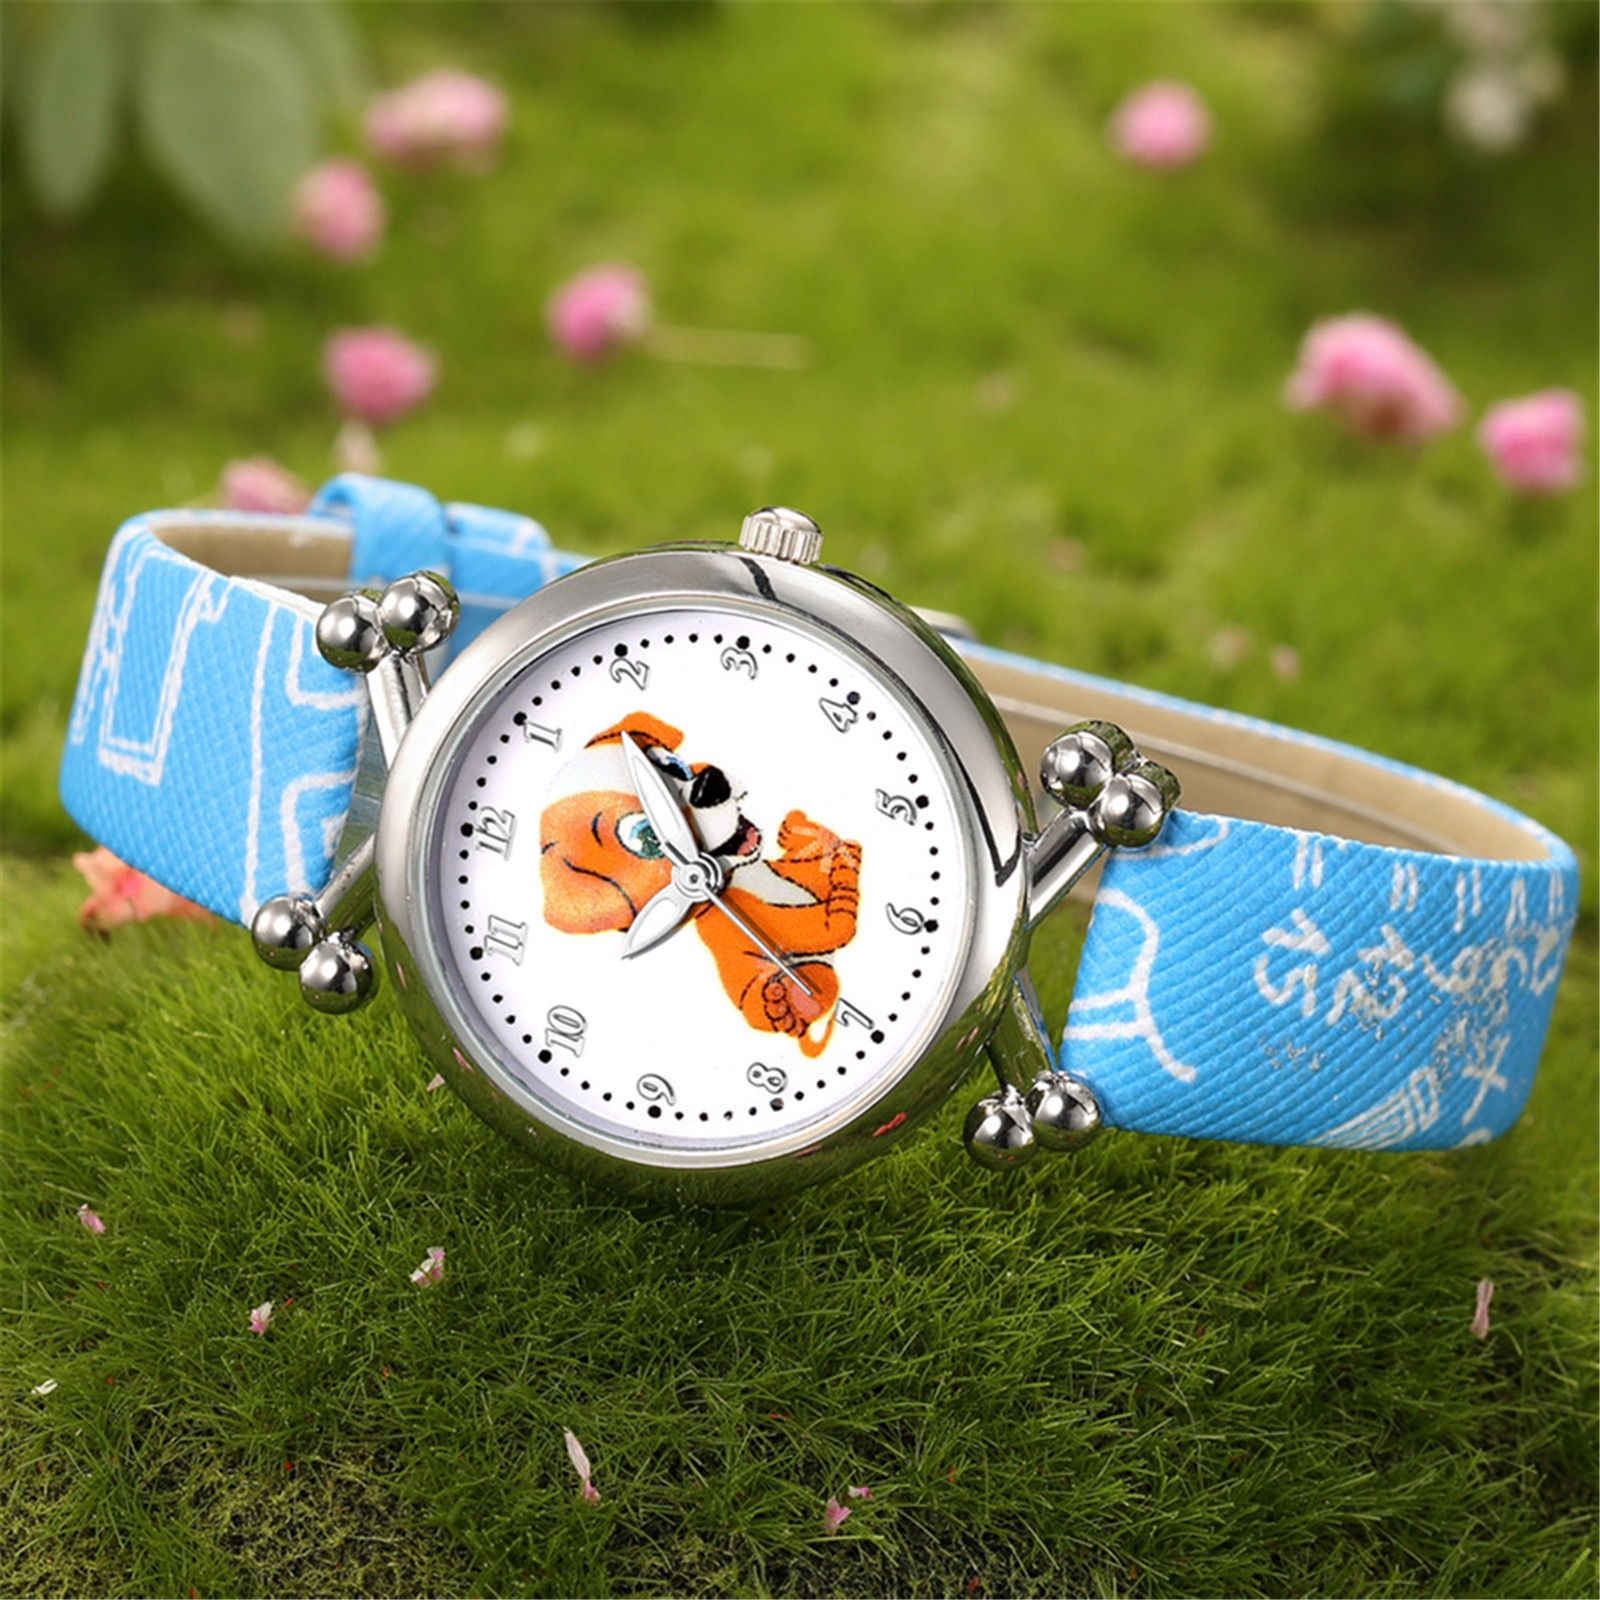 New Arrival Students Quartz Wristwatches Orologio Per Bambini Cartoon Printing Watches For Children